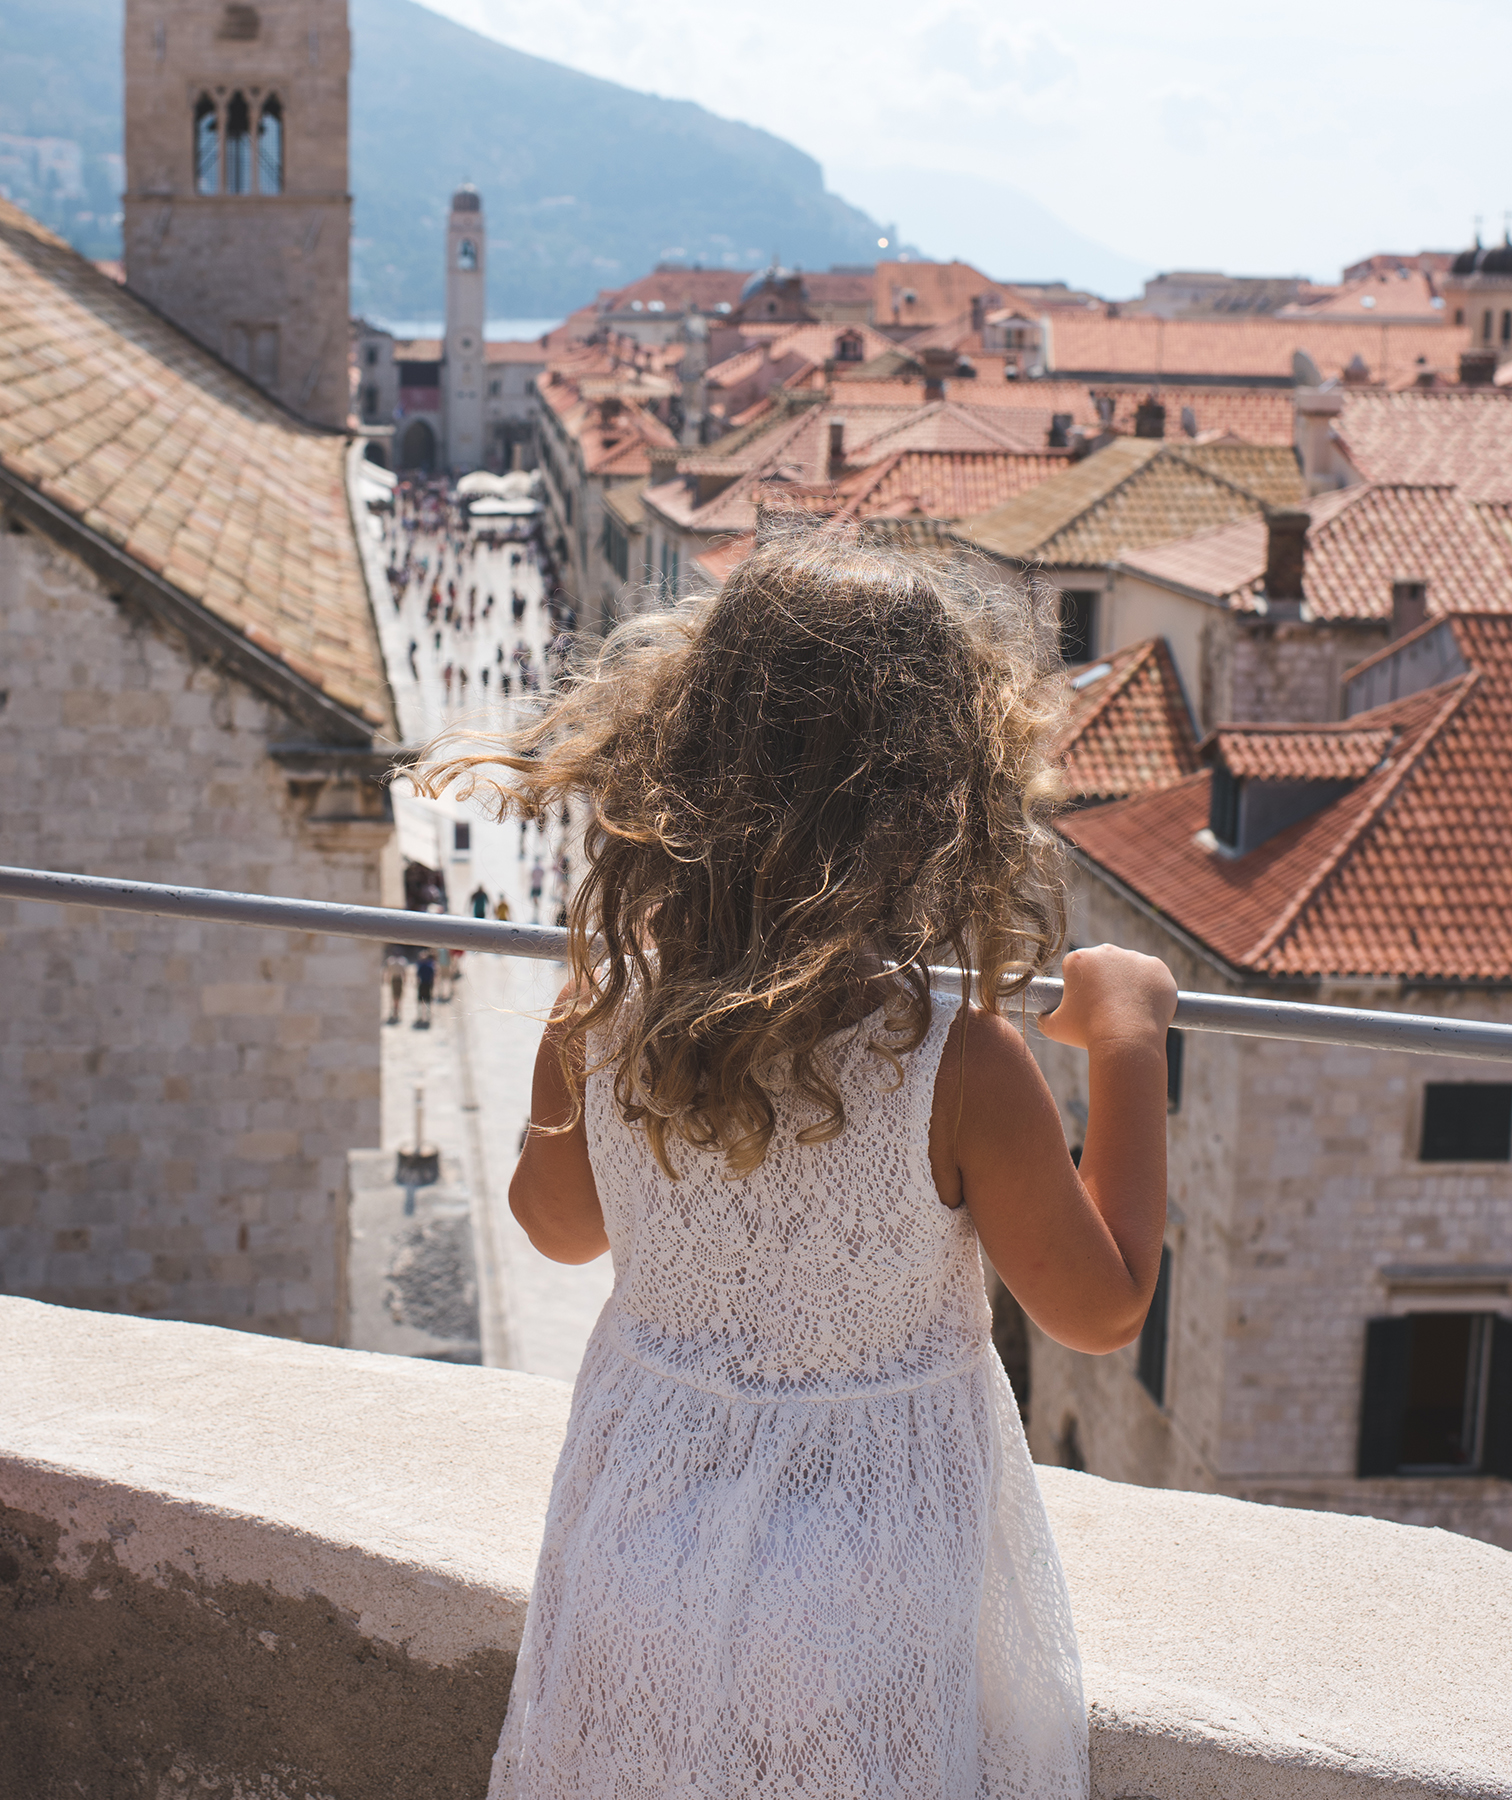 Girl looking out over view of Dubrovnik, Croatia